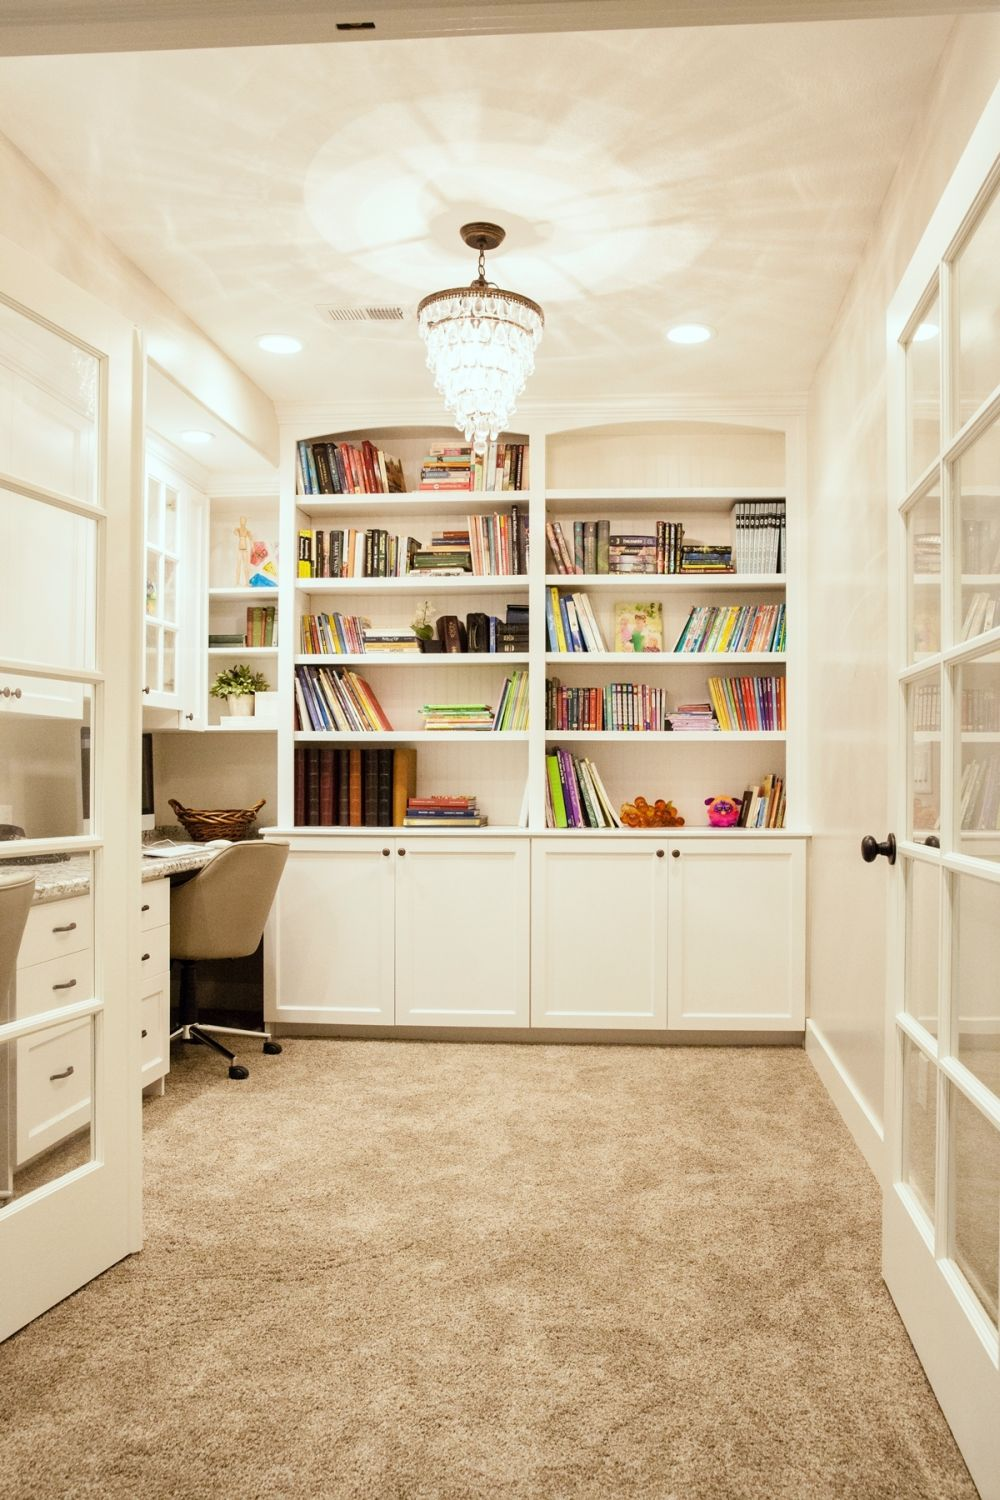 Built-in shelving and cupboards